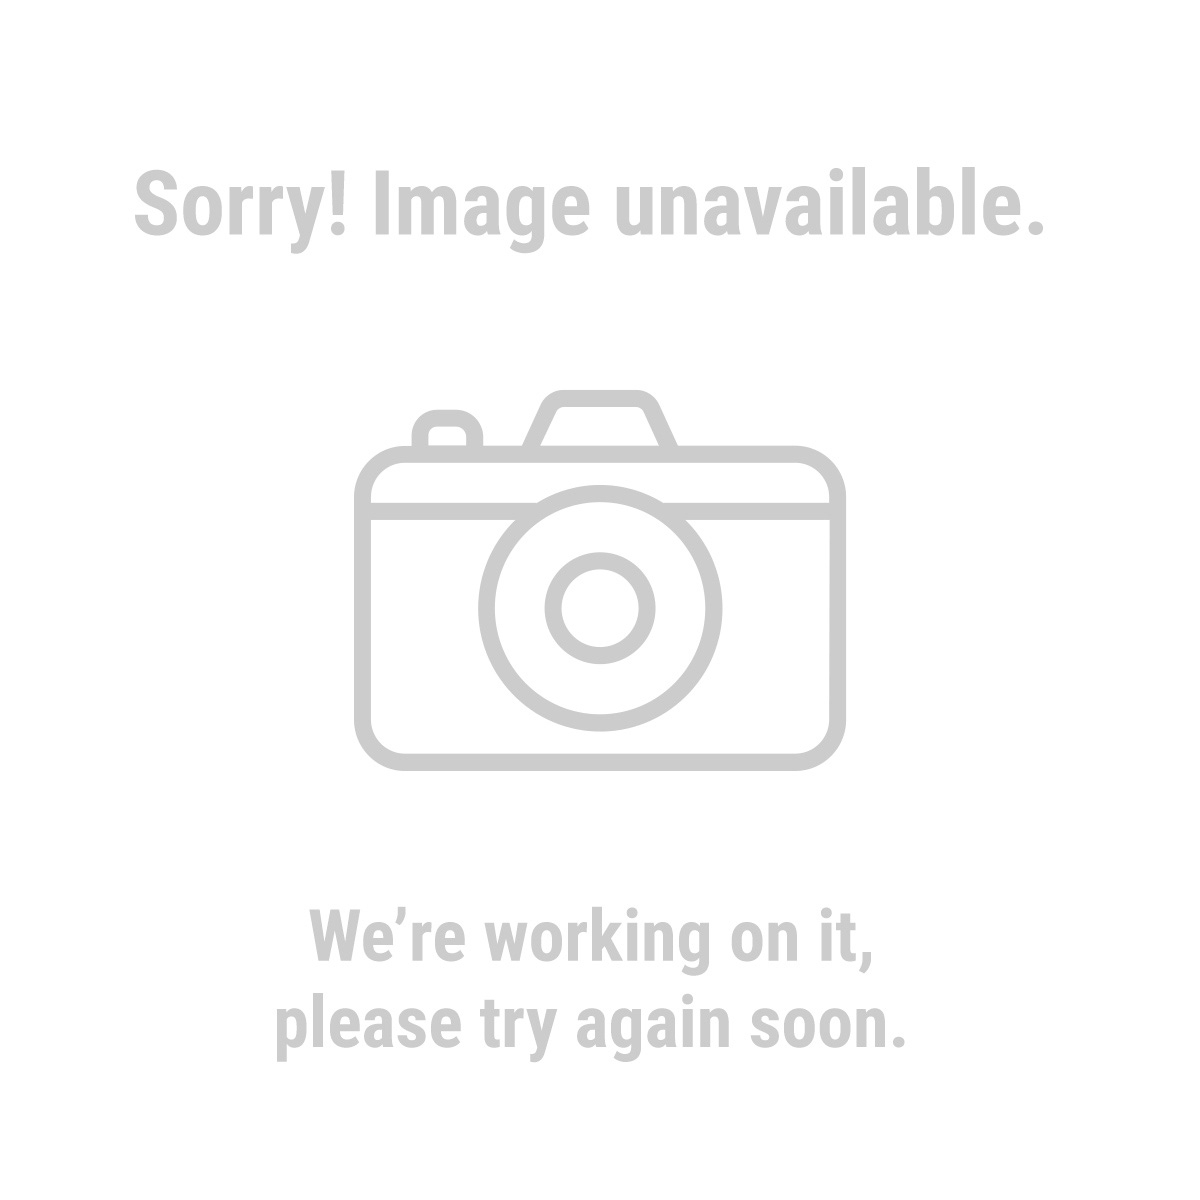 HFT® 61763 5 ft 6 in. x 7 ft. 6 in. Camouflage All Purpose/Weather Resistant Tarp